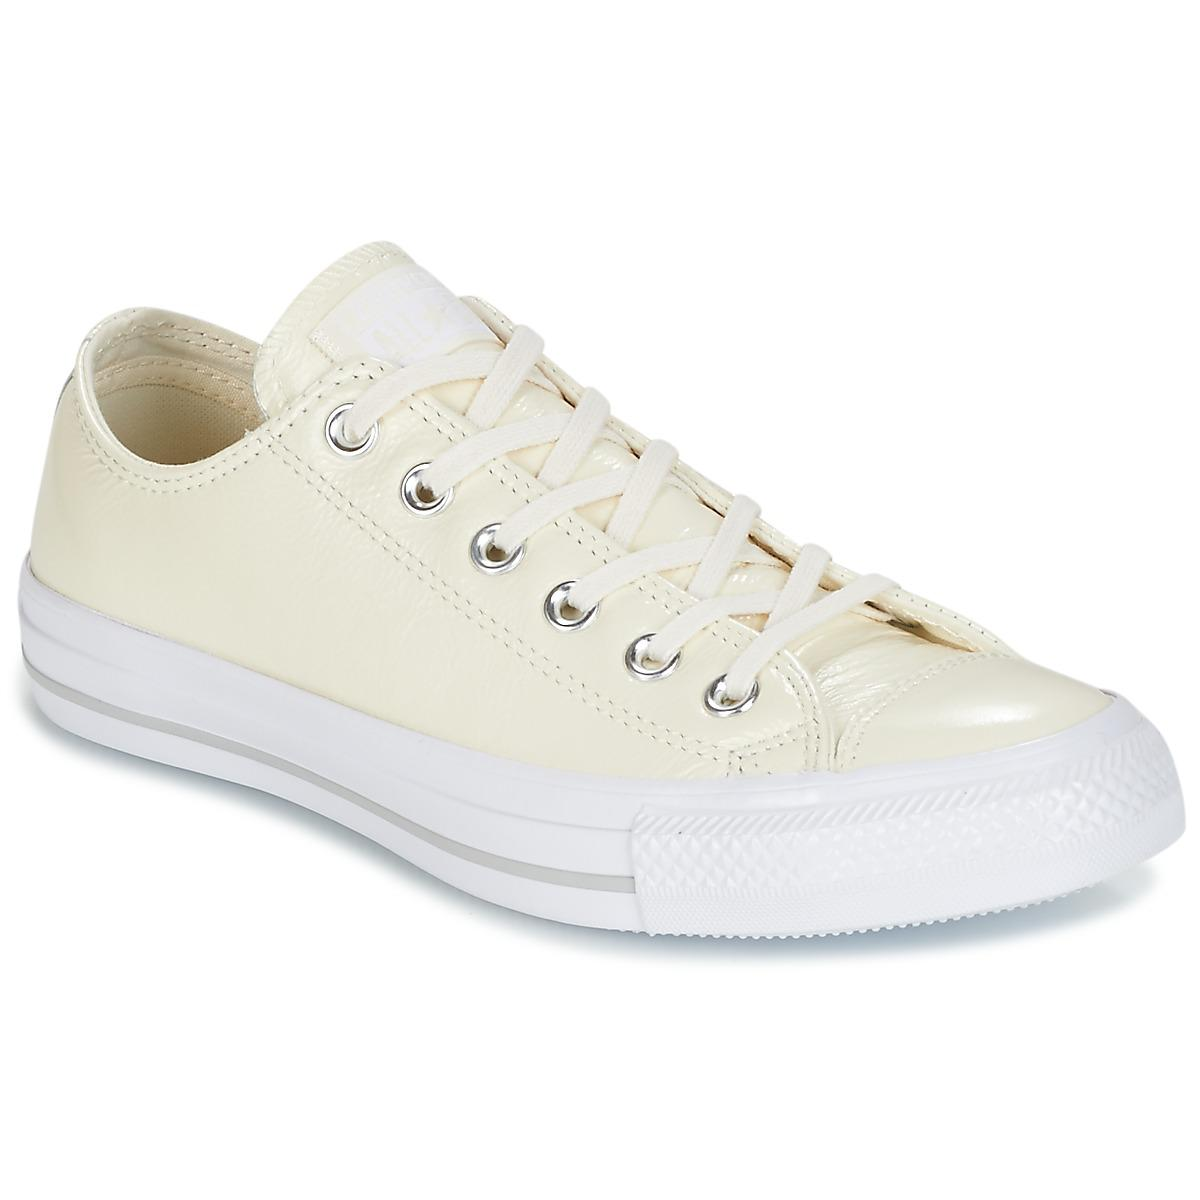 79fccfcdf4520e Converse Chuck Taylor All Star Crinkled Patent Leather Ox Egret ...